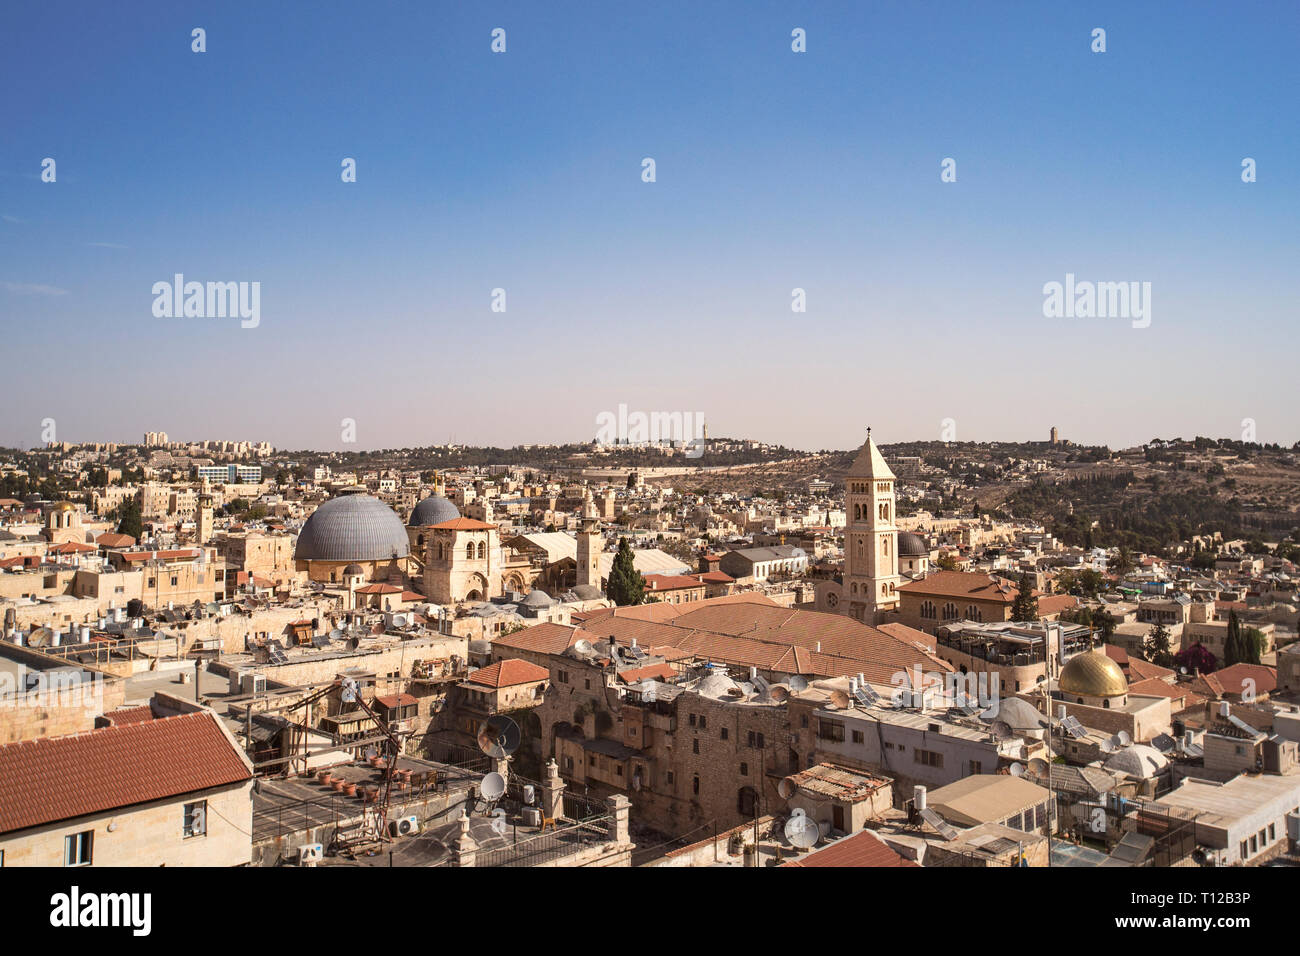 Israel landscape attractions. Jerusalem view of the old town and new city. View from the top of the tower of David. Ancient buildings, Christian, Jewi - Stock Image